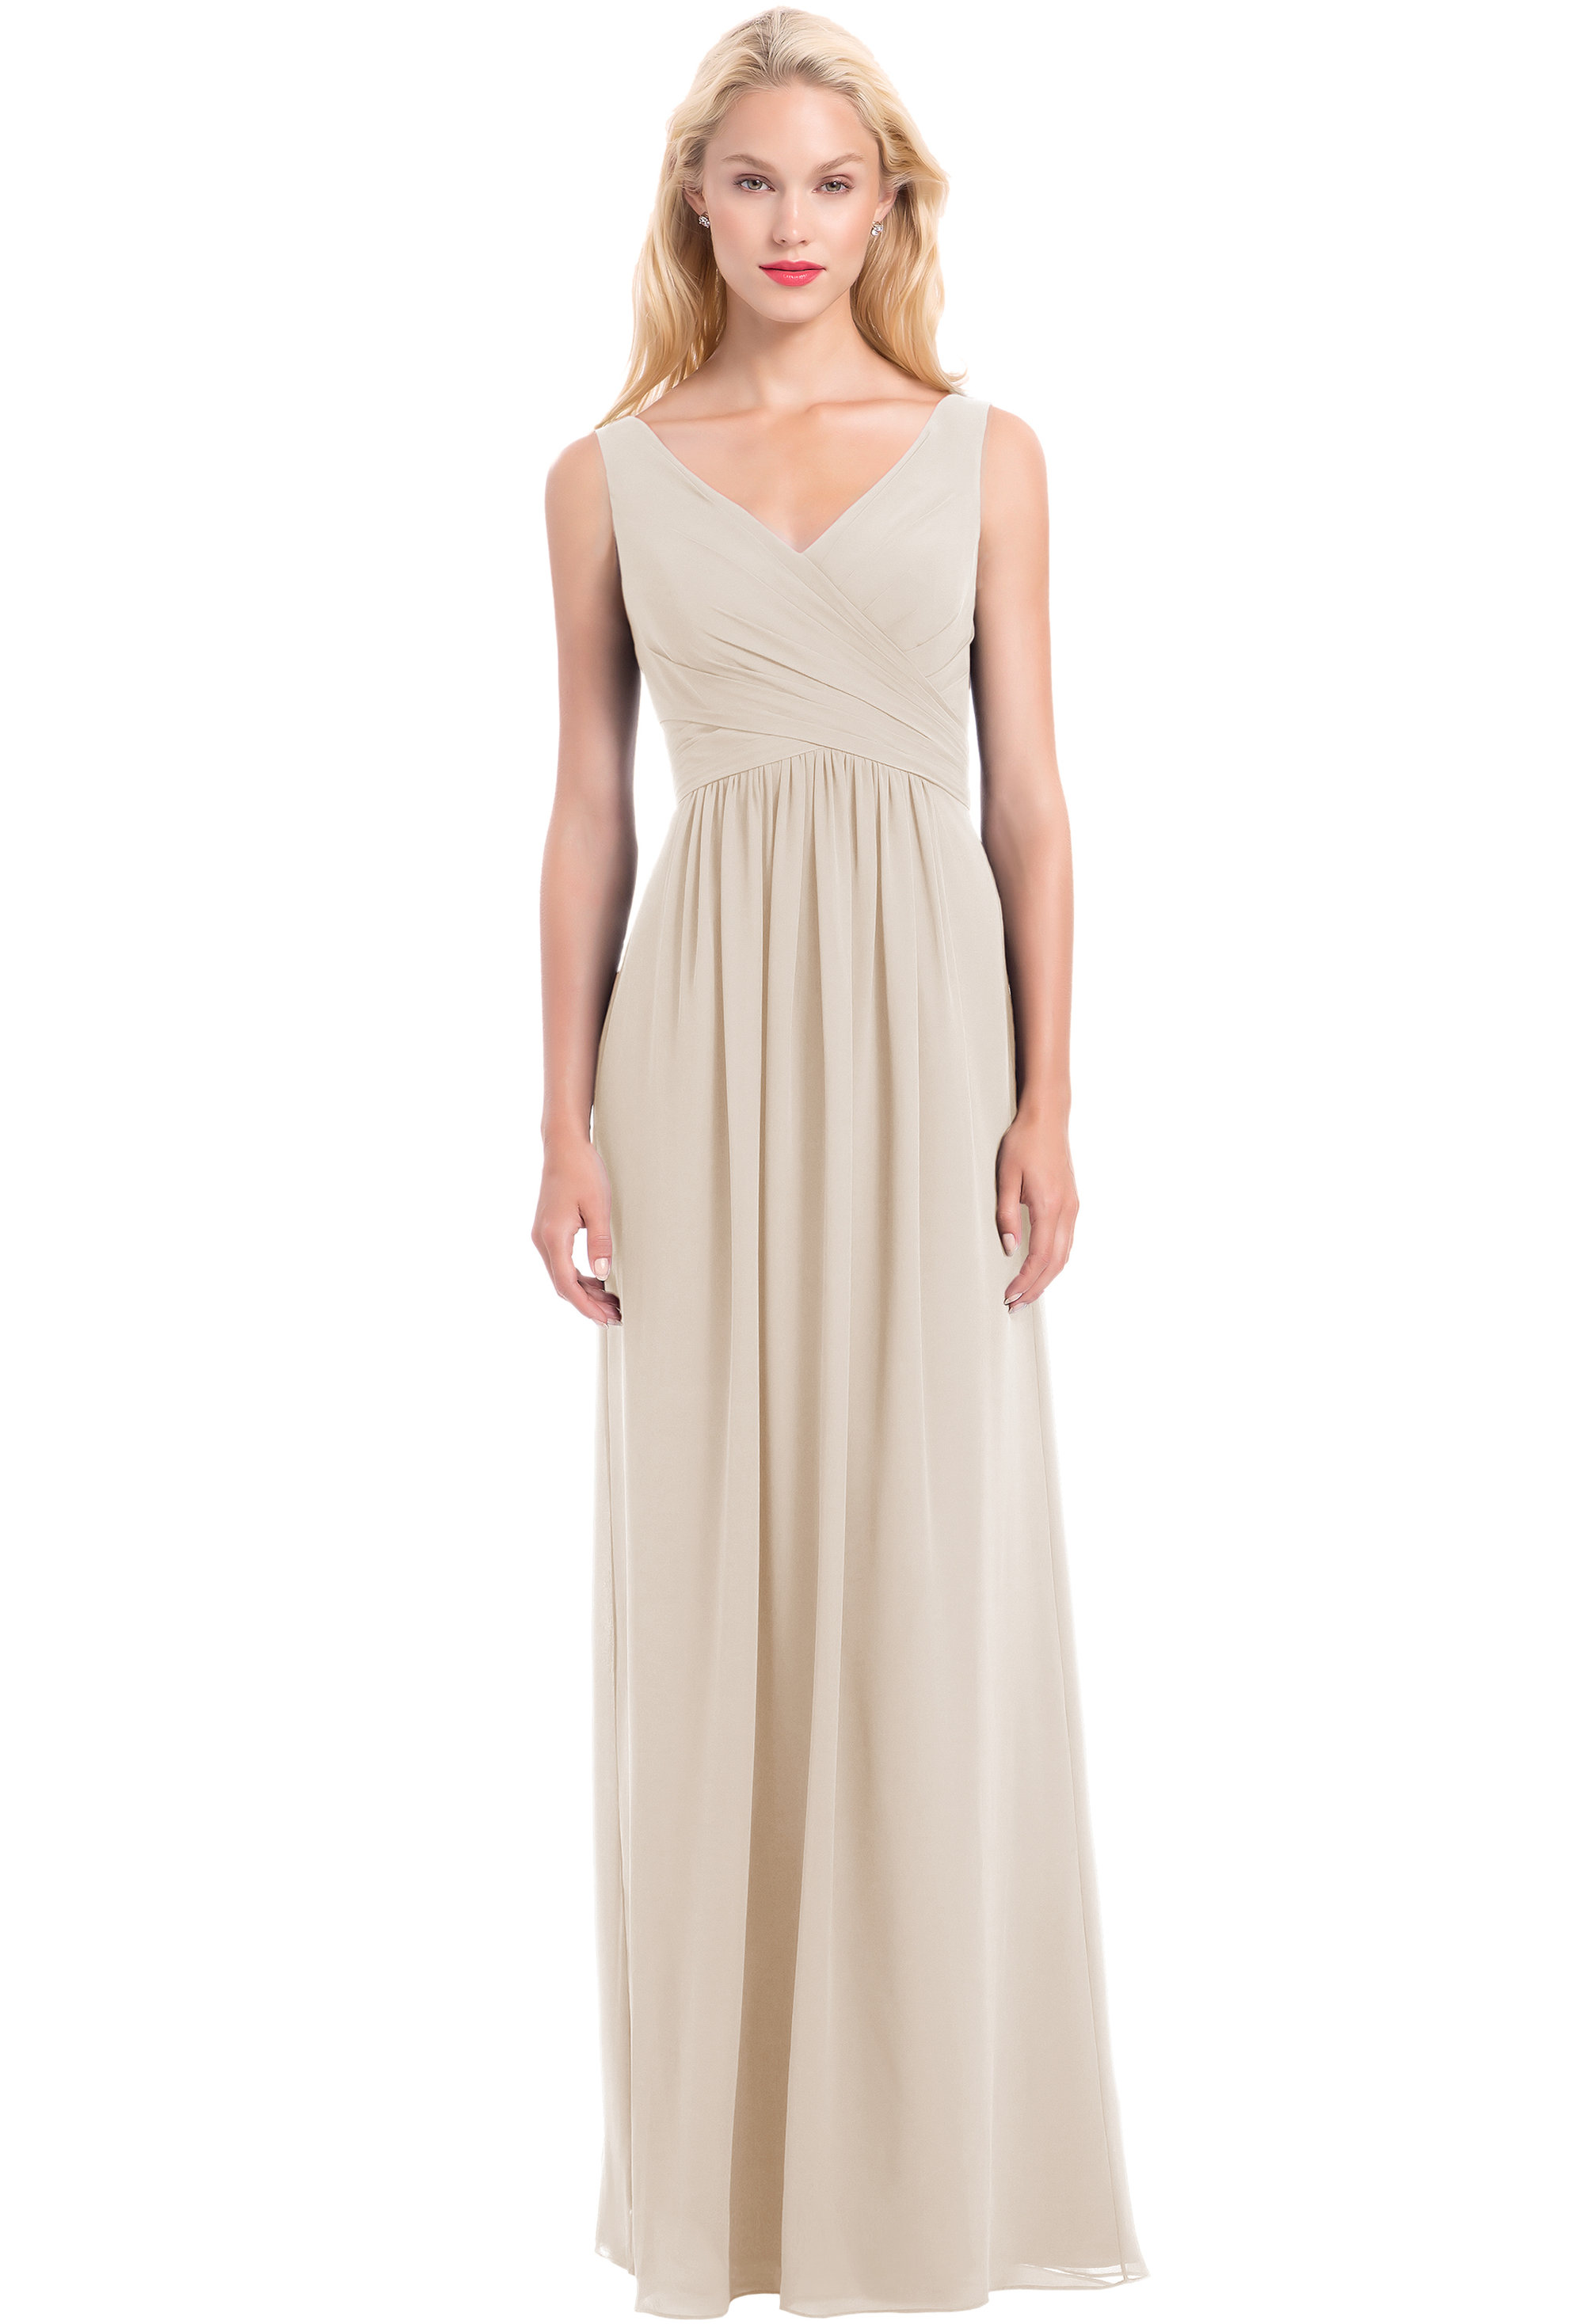 Bill Levkoff CHAMPAGNE Chiffon Sleeveless A-line gown, $210.00 Front